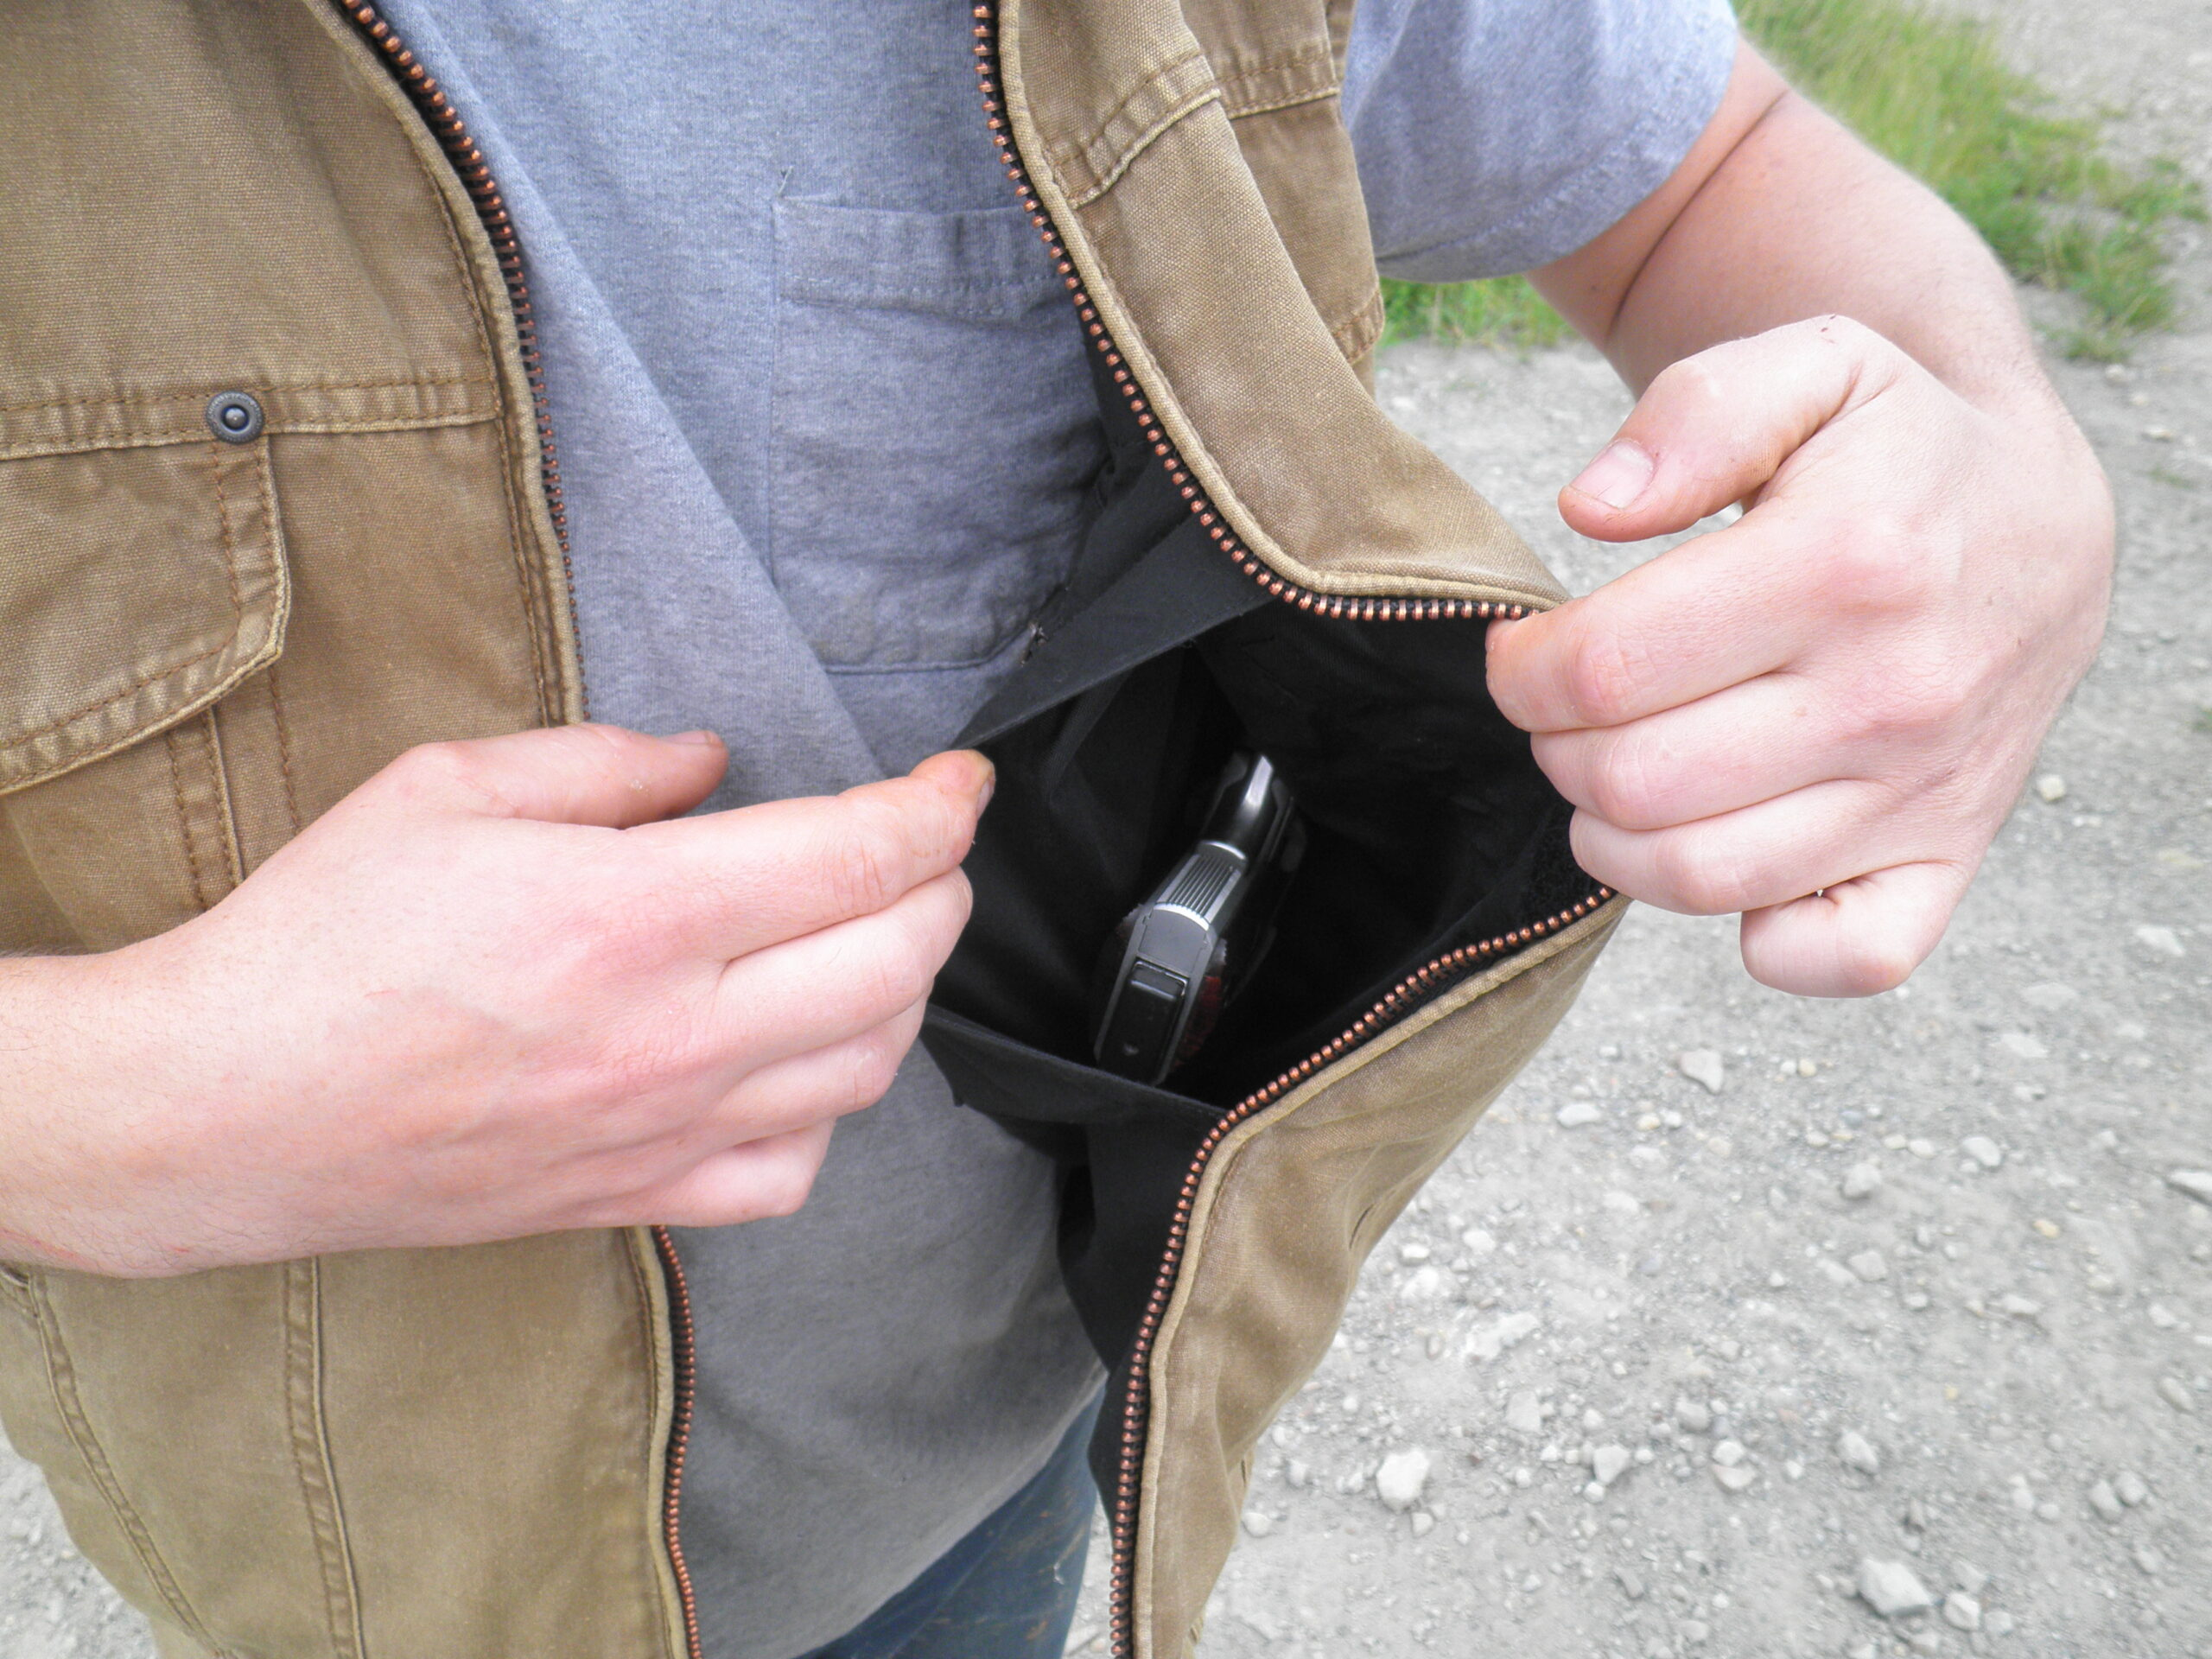 How to Make Homemade Attire for Concealed Carry